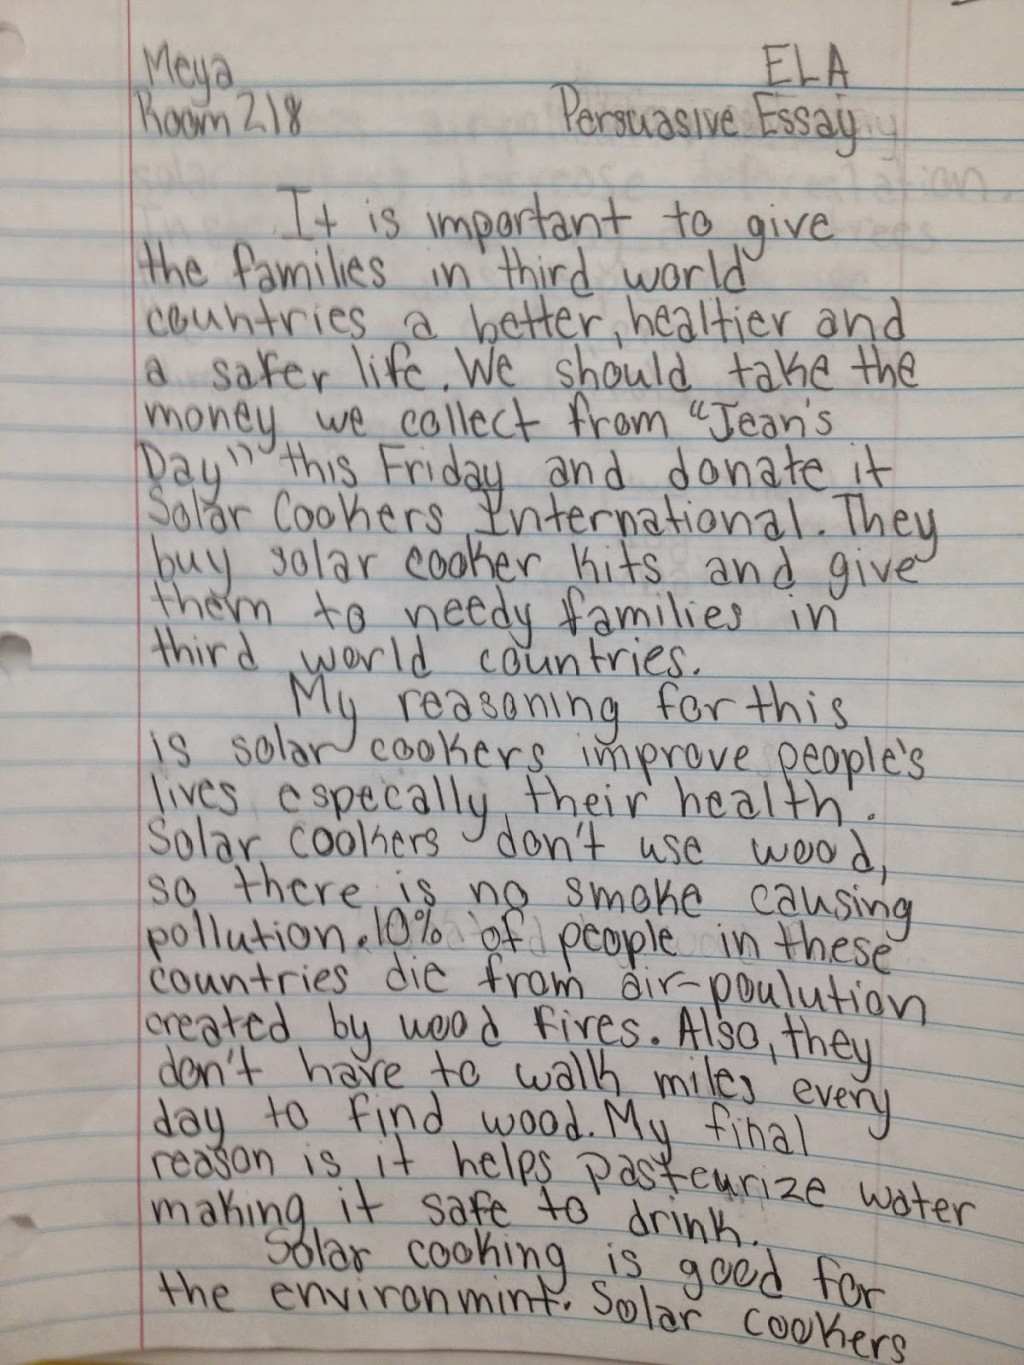 004 Essay Example Img 3373 Essays For Grade Awesome 8 English 8th Graders Narrative Large